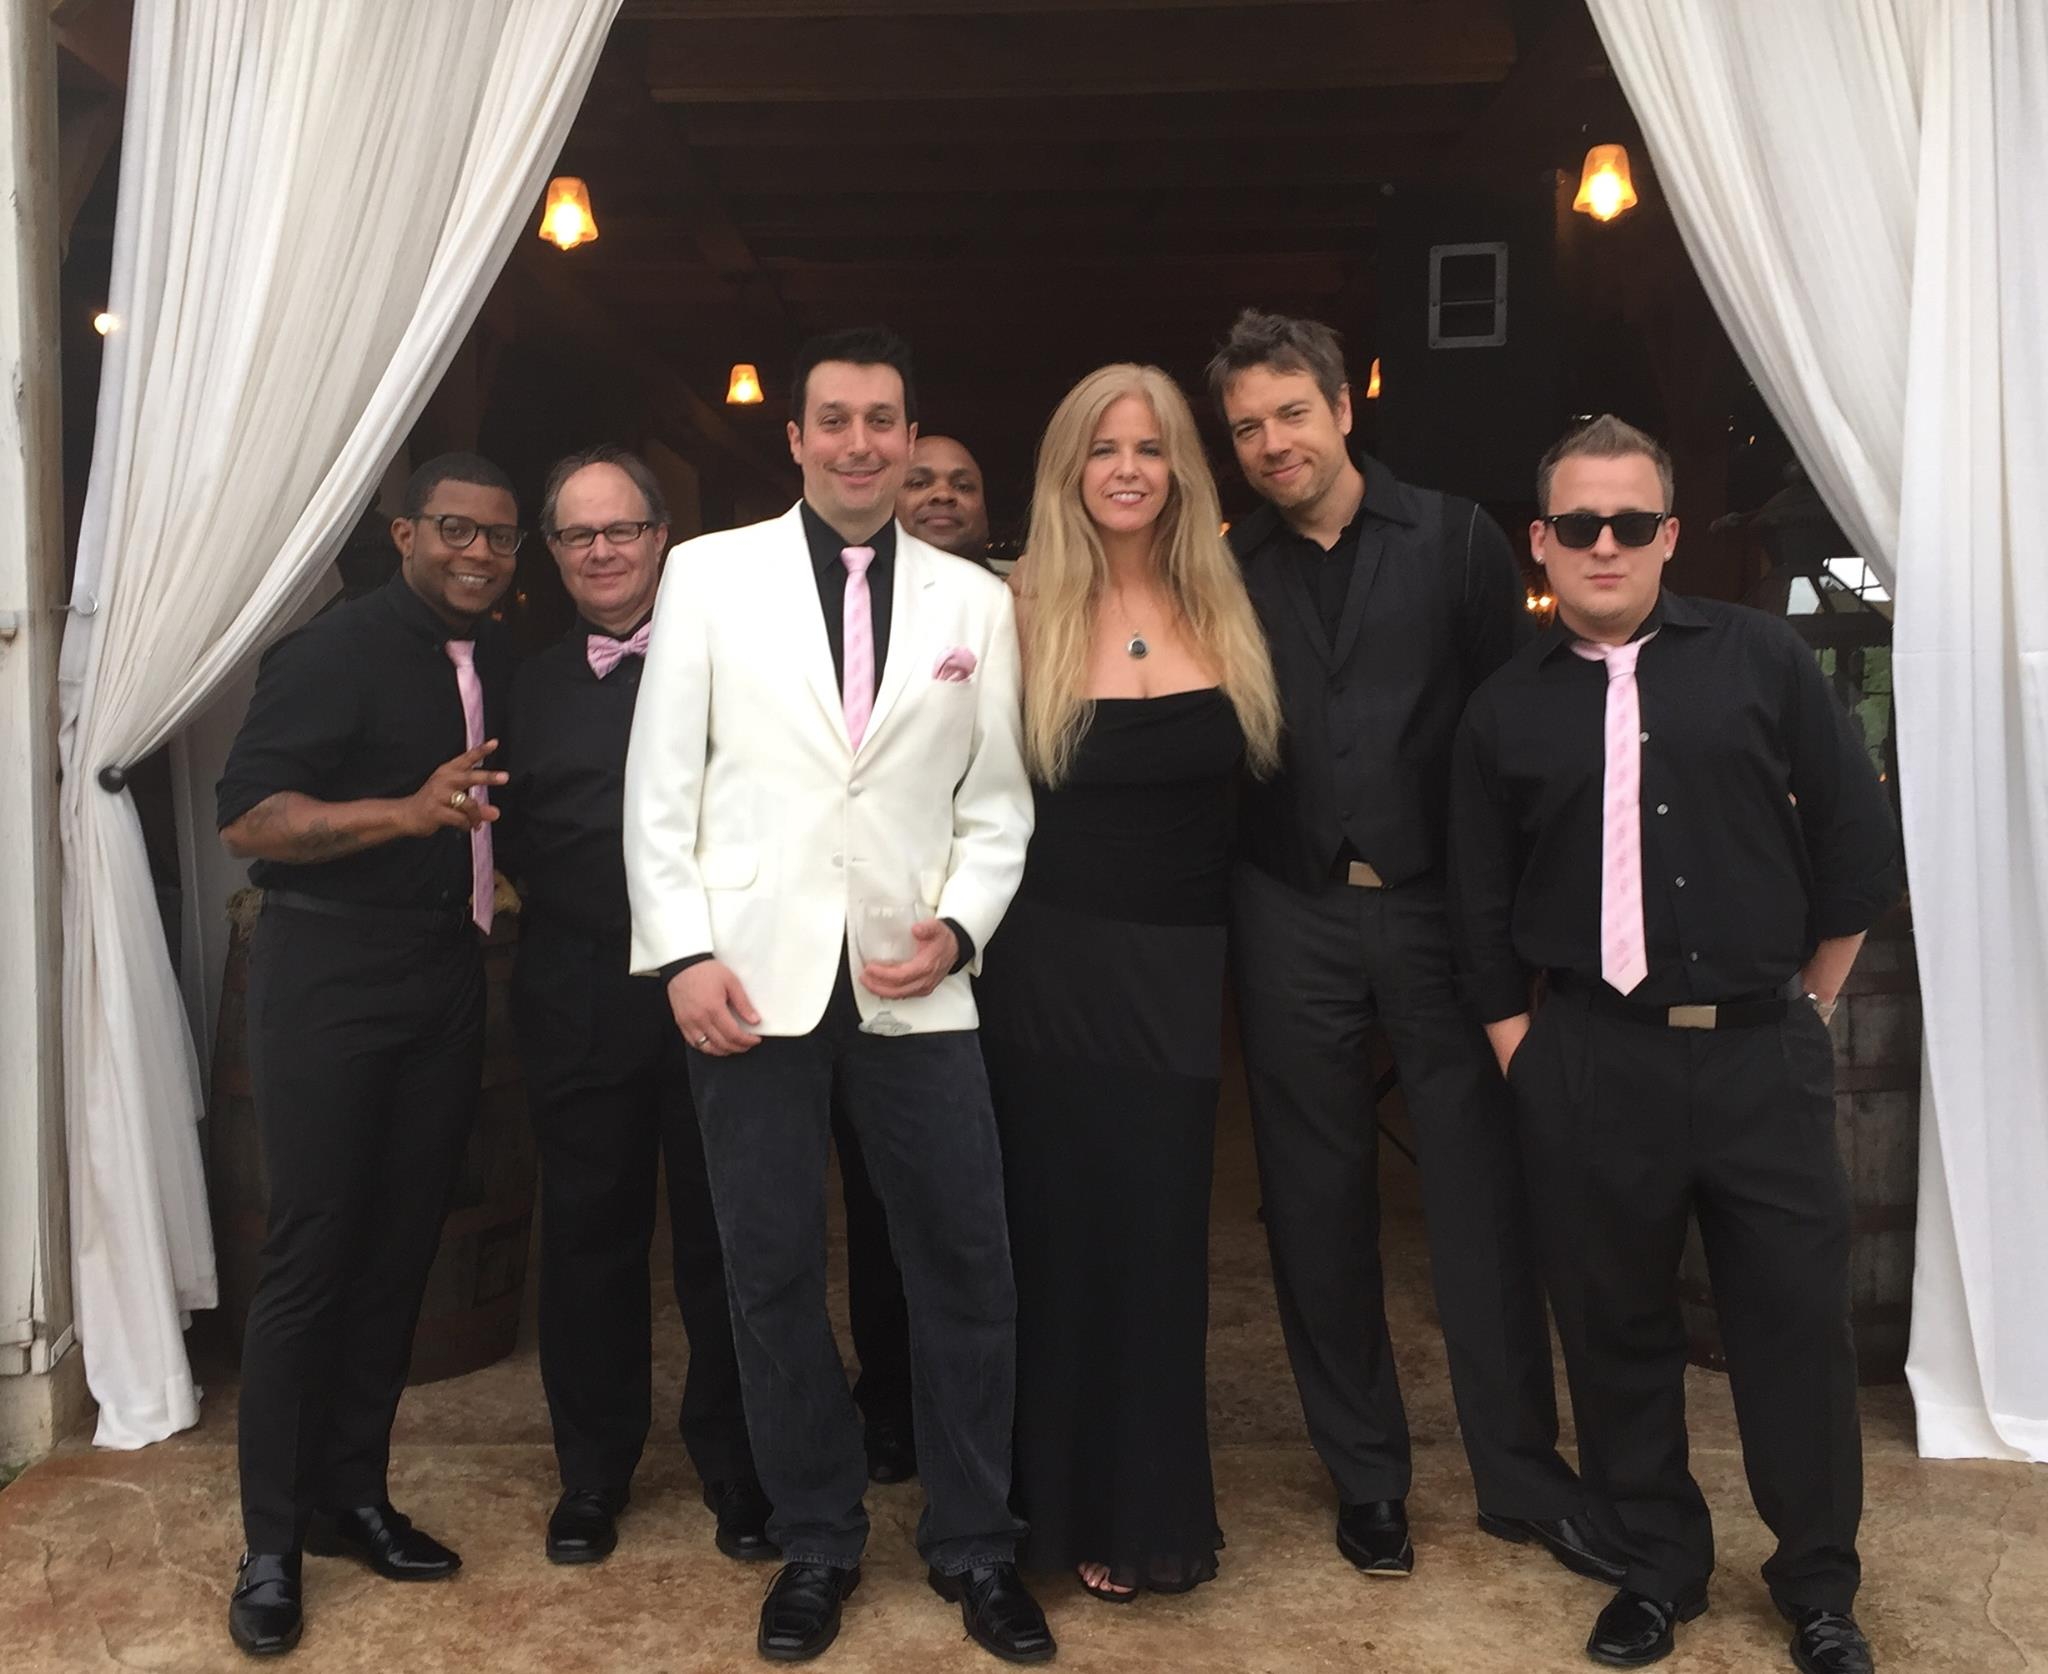 Nick and The Grooves wedding April 2015.jpg